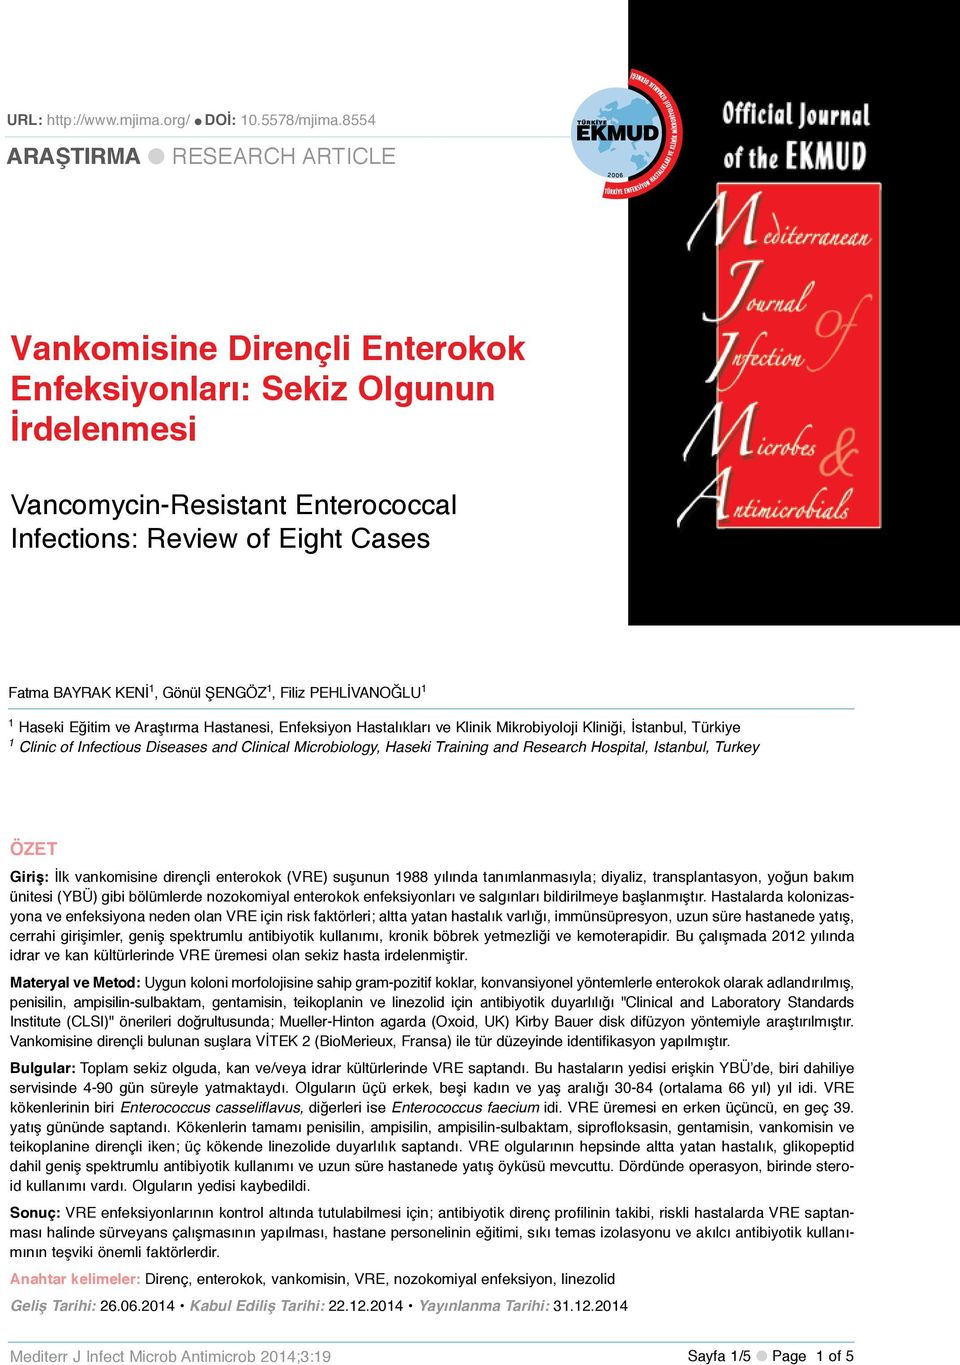 8554 ARAŞTIRMA l RESEARCH ARTICLE http://www.mjima.